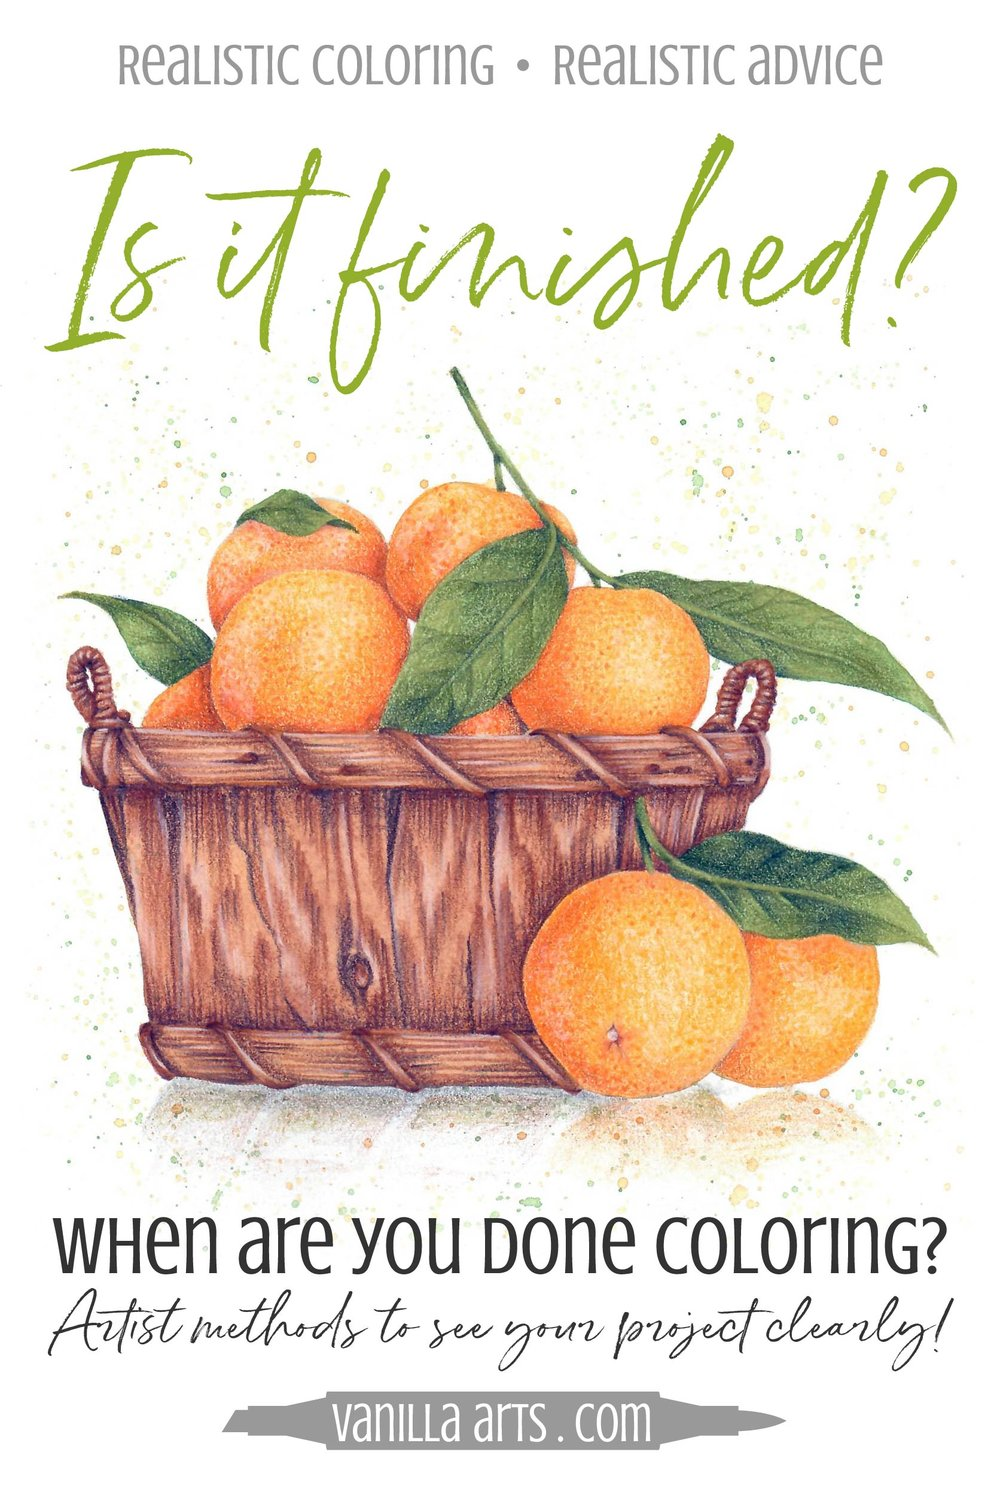 You need a good eye and instinct to know when your Copic or colored pencil project is truly finished. Learn artist's methods to see your coloring projects clearly.| VanillaArts.com | #copic #coloredpencil #adultcoloring #realism